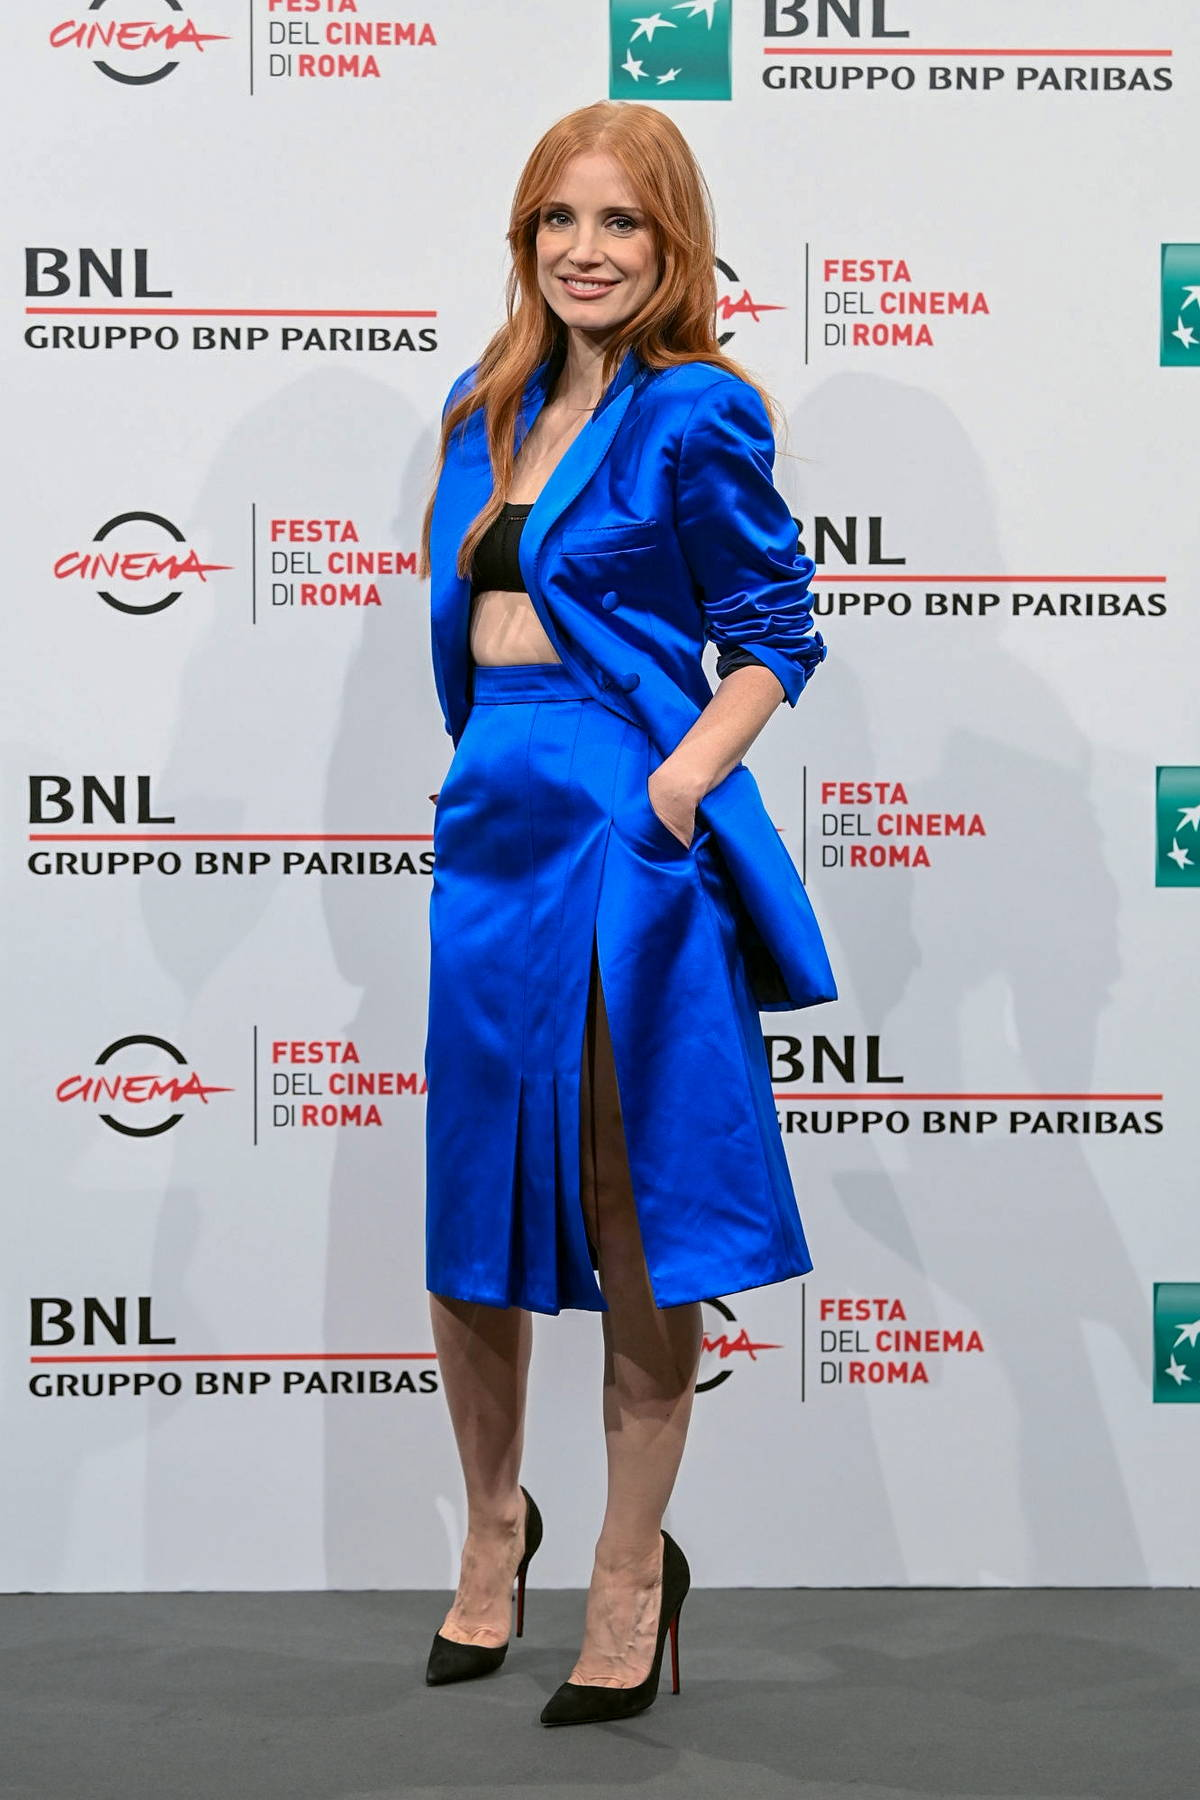 Jessica Chastain attends the photocall for 'The Eyes Of Tammie Fay' during the 16th Rome Film Fest in Rome, Italy